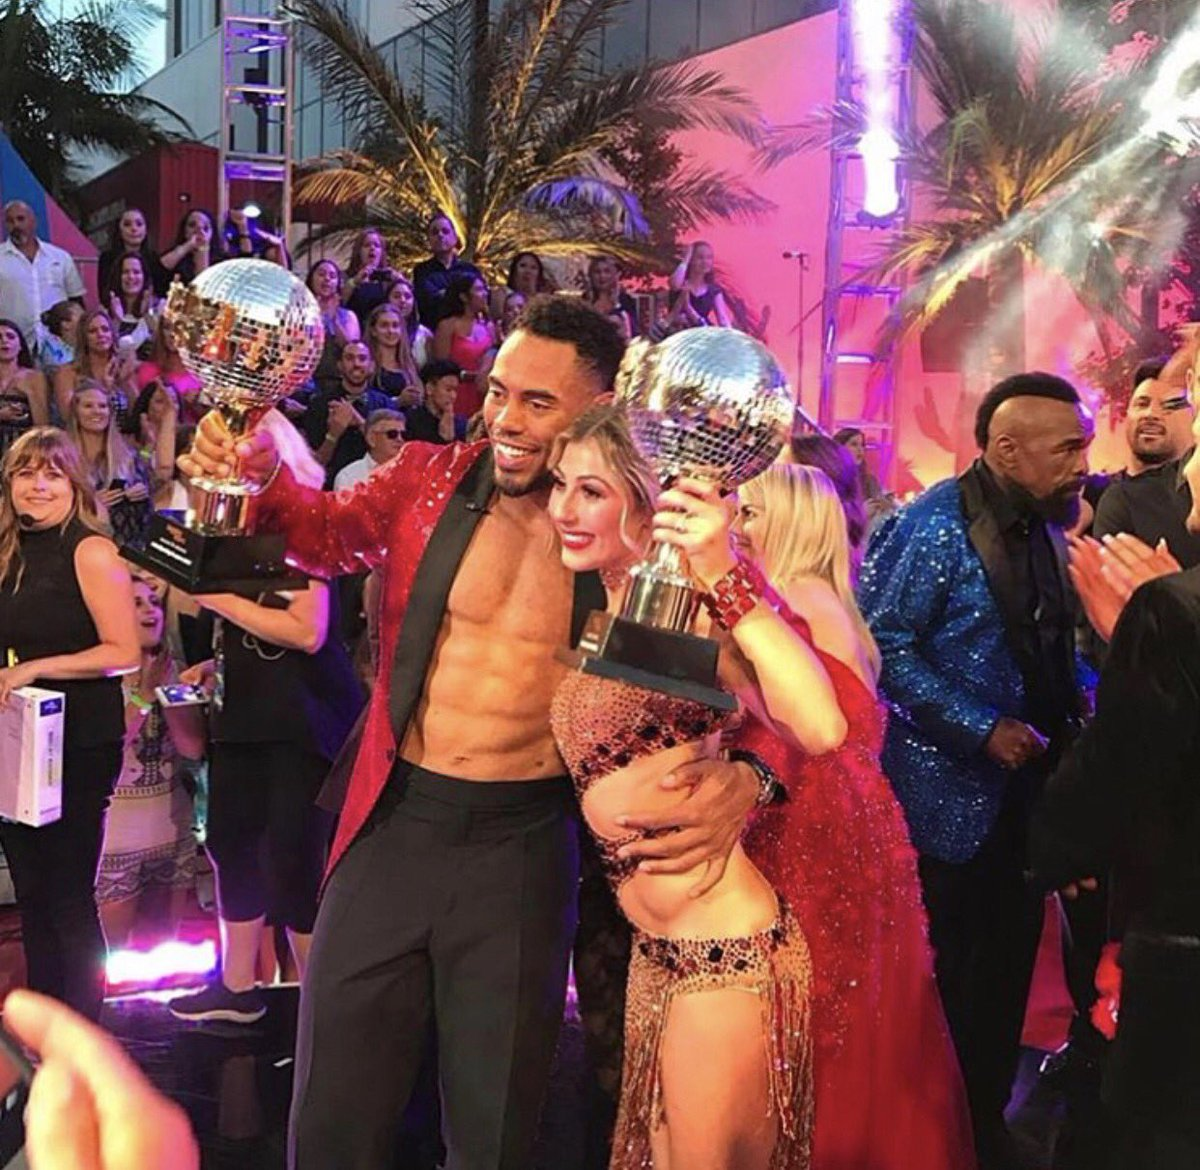 I would never have dreamed I'd be on @DancingABC much less win the Mirror Ball! @EmmaSlaterDance I'm SO your biggest fan! We did it!!! #DWTS